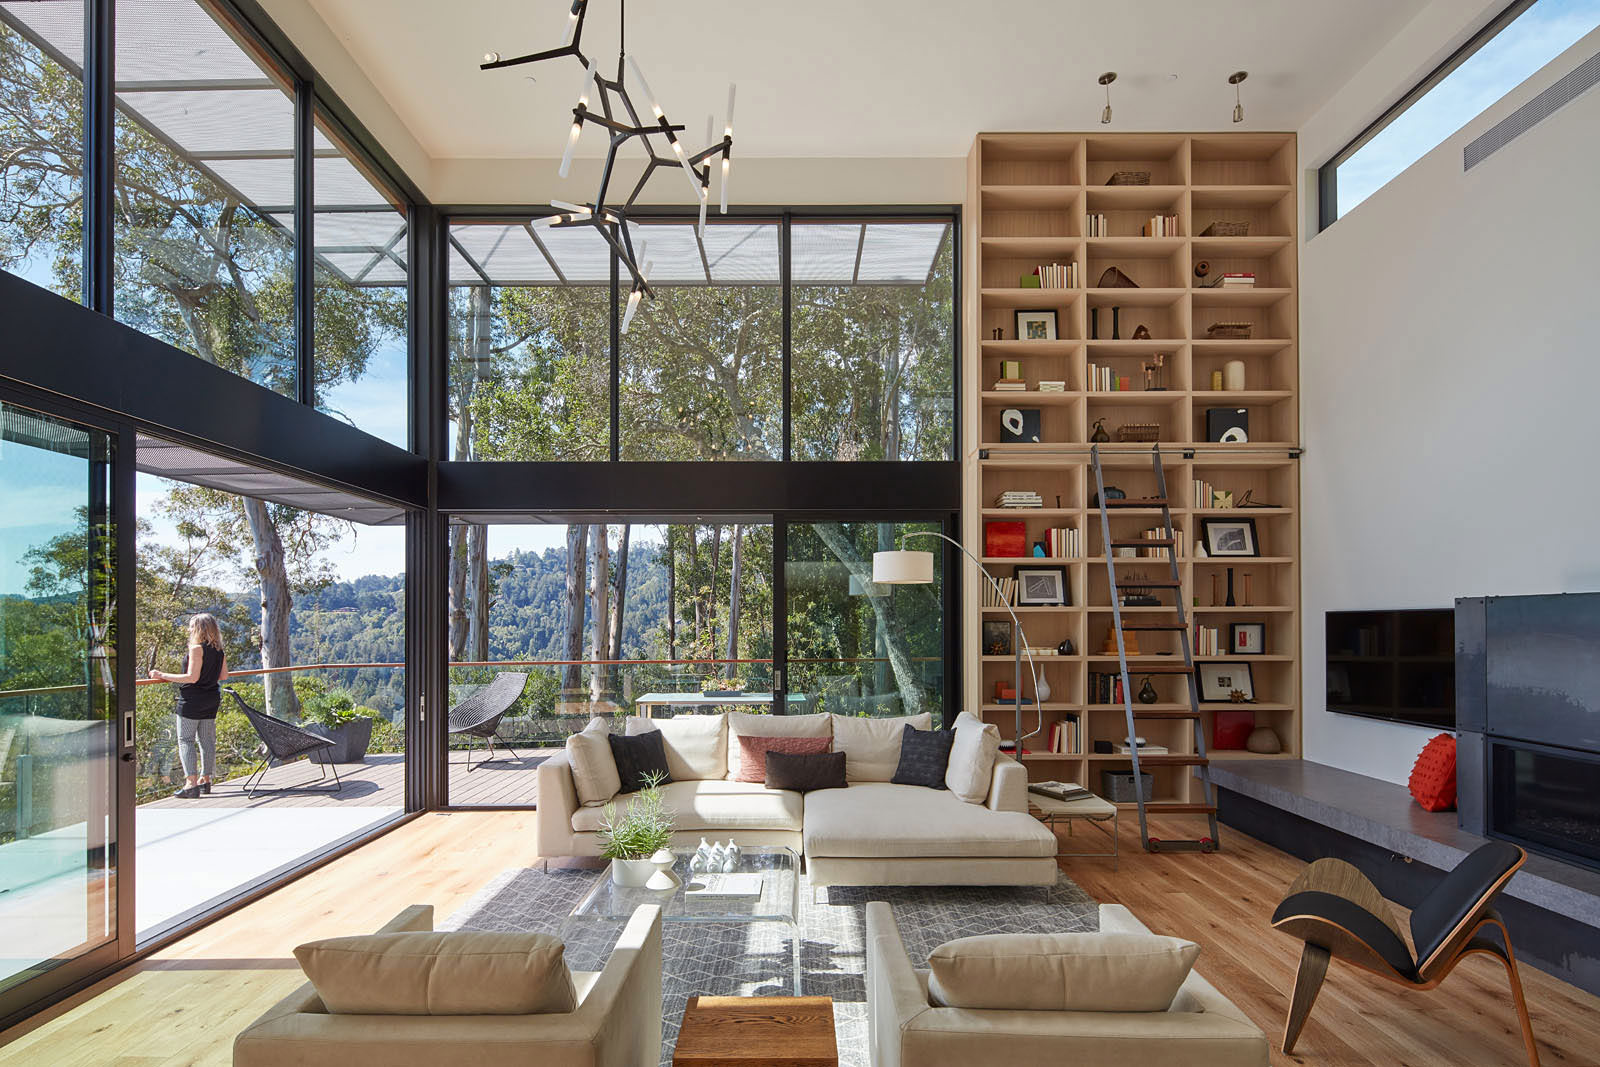 Most Popular Interior Design Styles Whats Trendy In 2020 Adorable Home